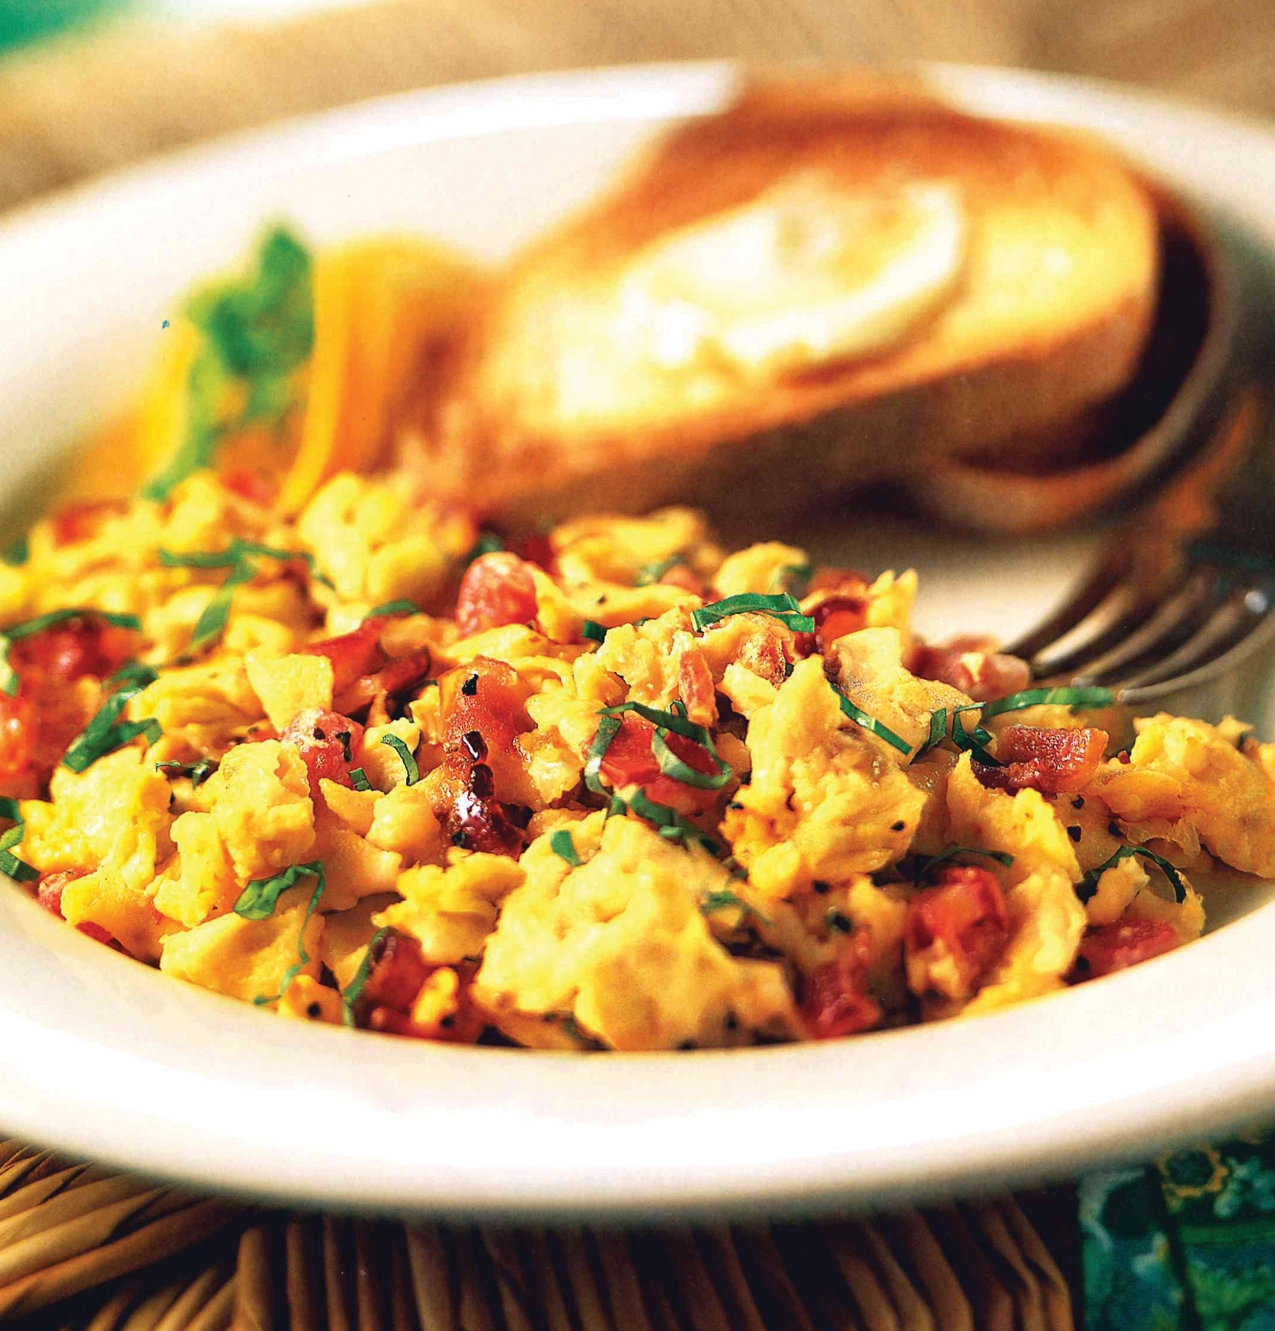 Bacon and Tomato Scramble